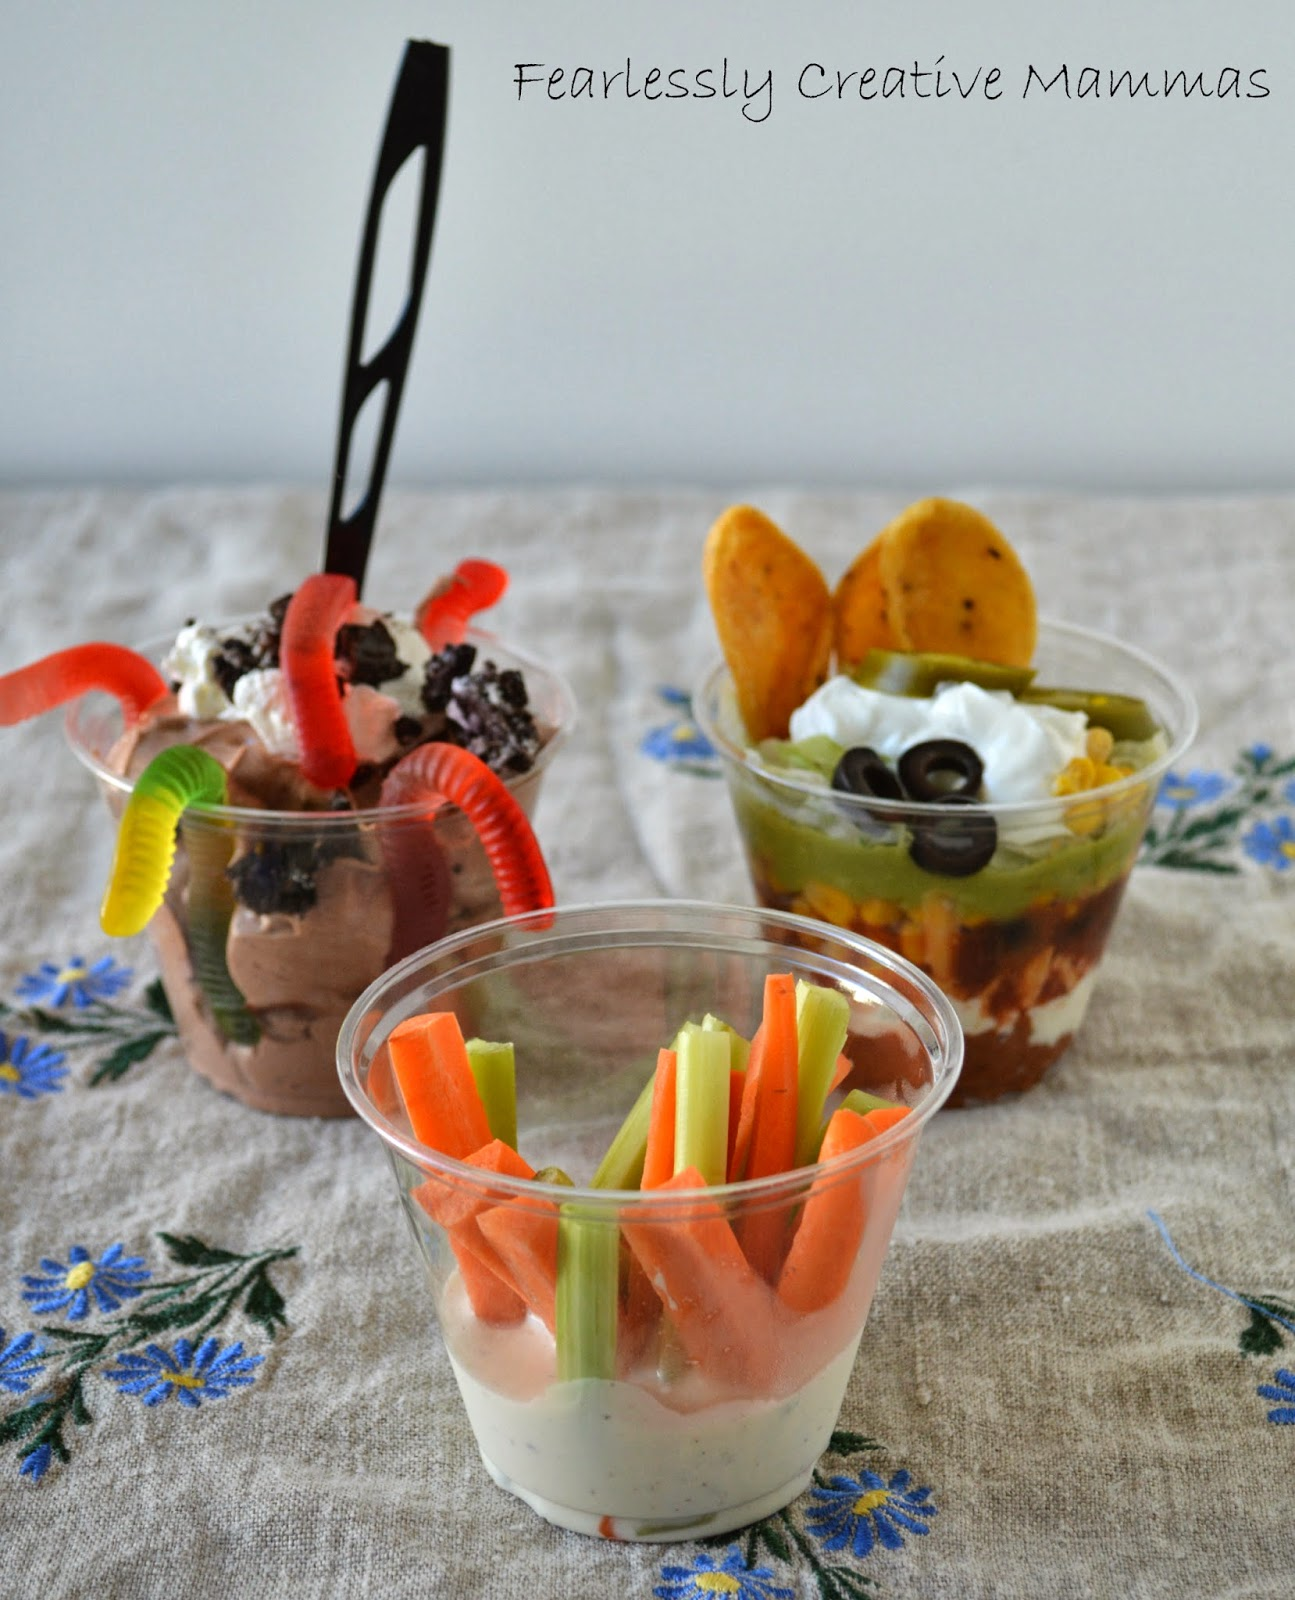 party appetizers day 1 - fearlessly creative mammas